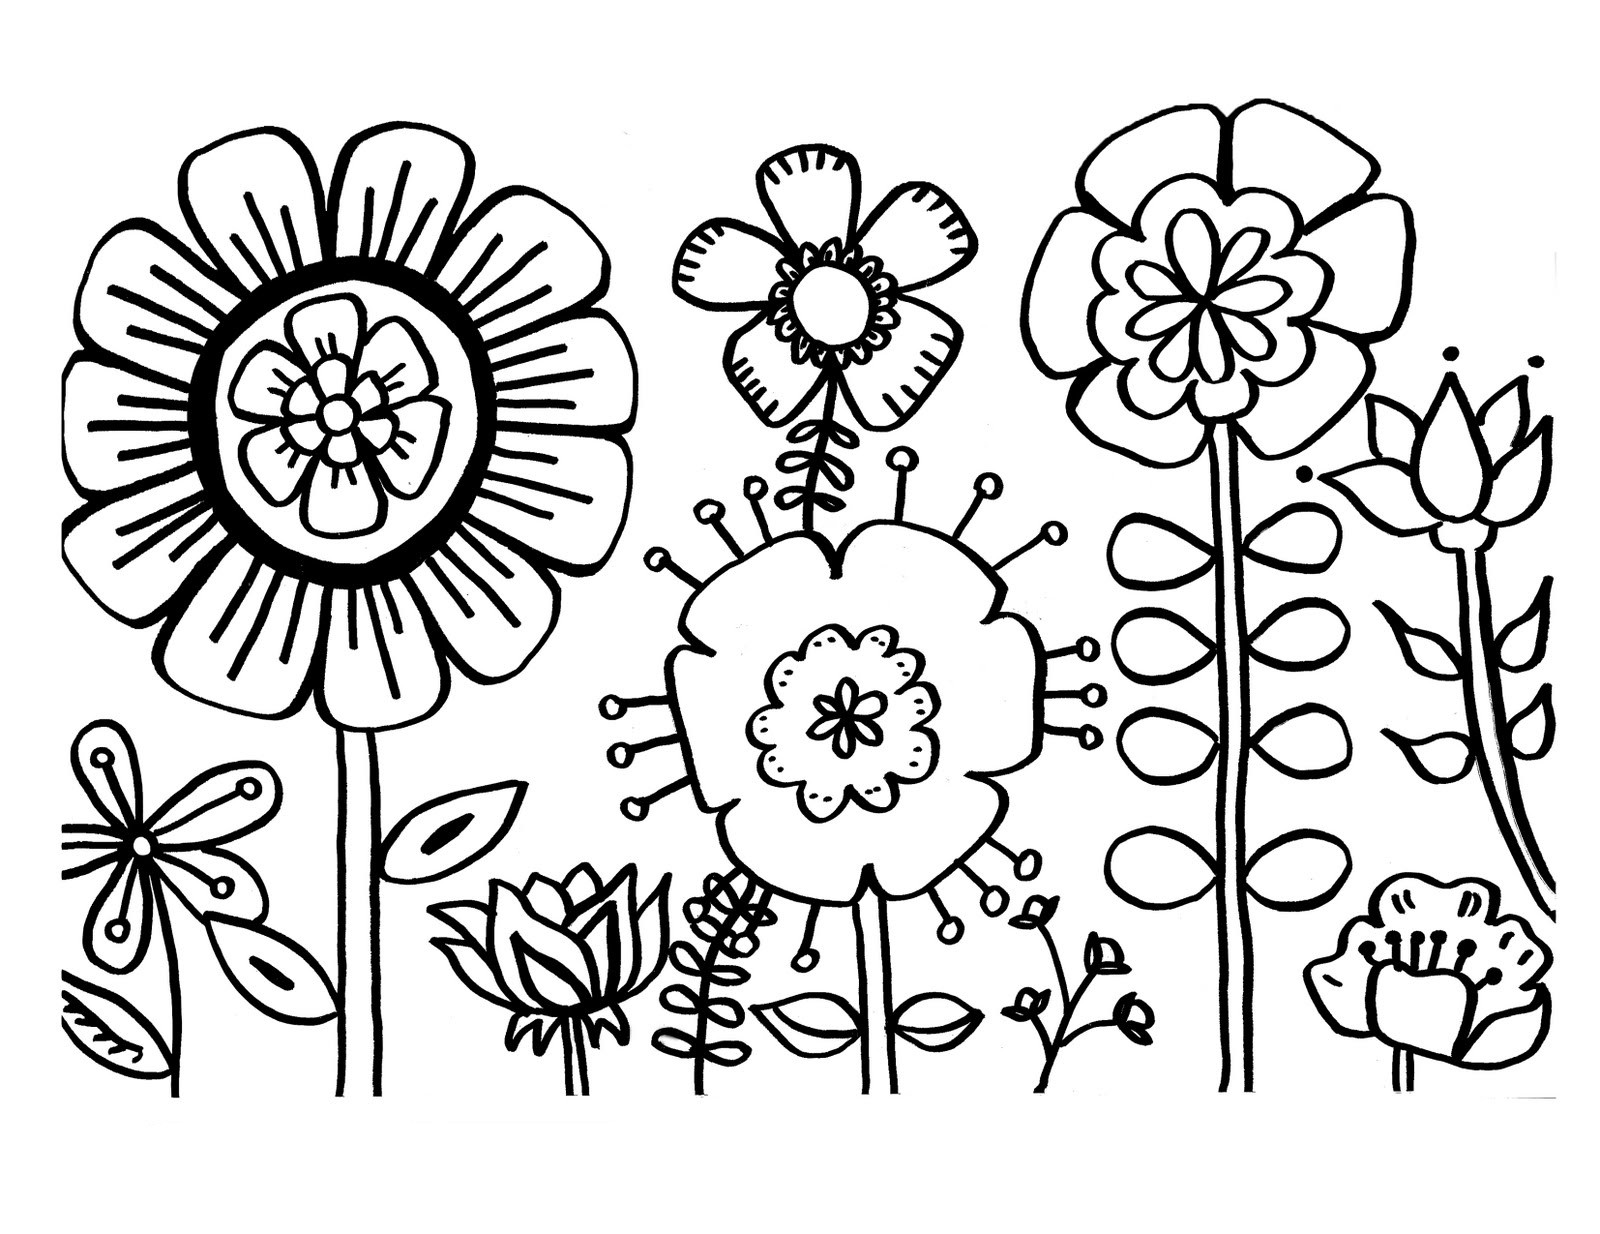 Flower Border Coloring Pages At GetDrawings